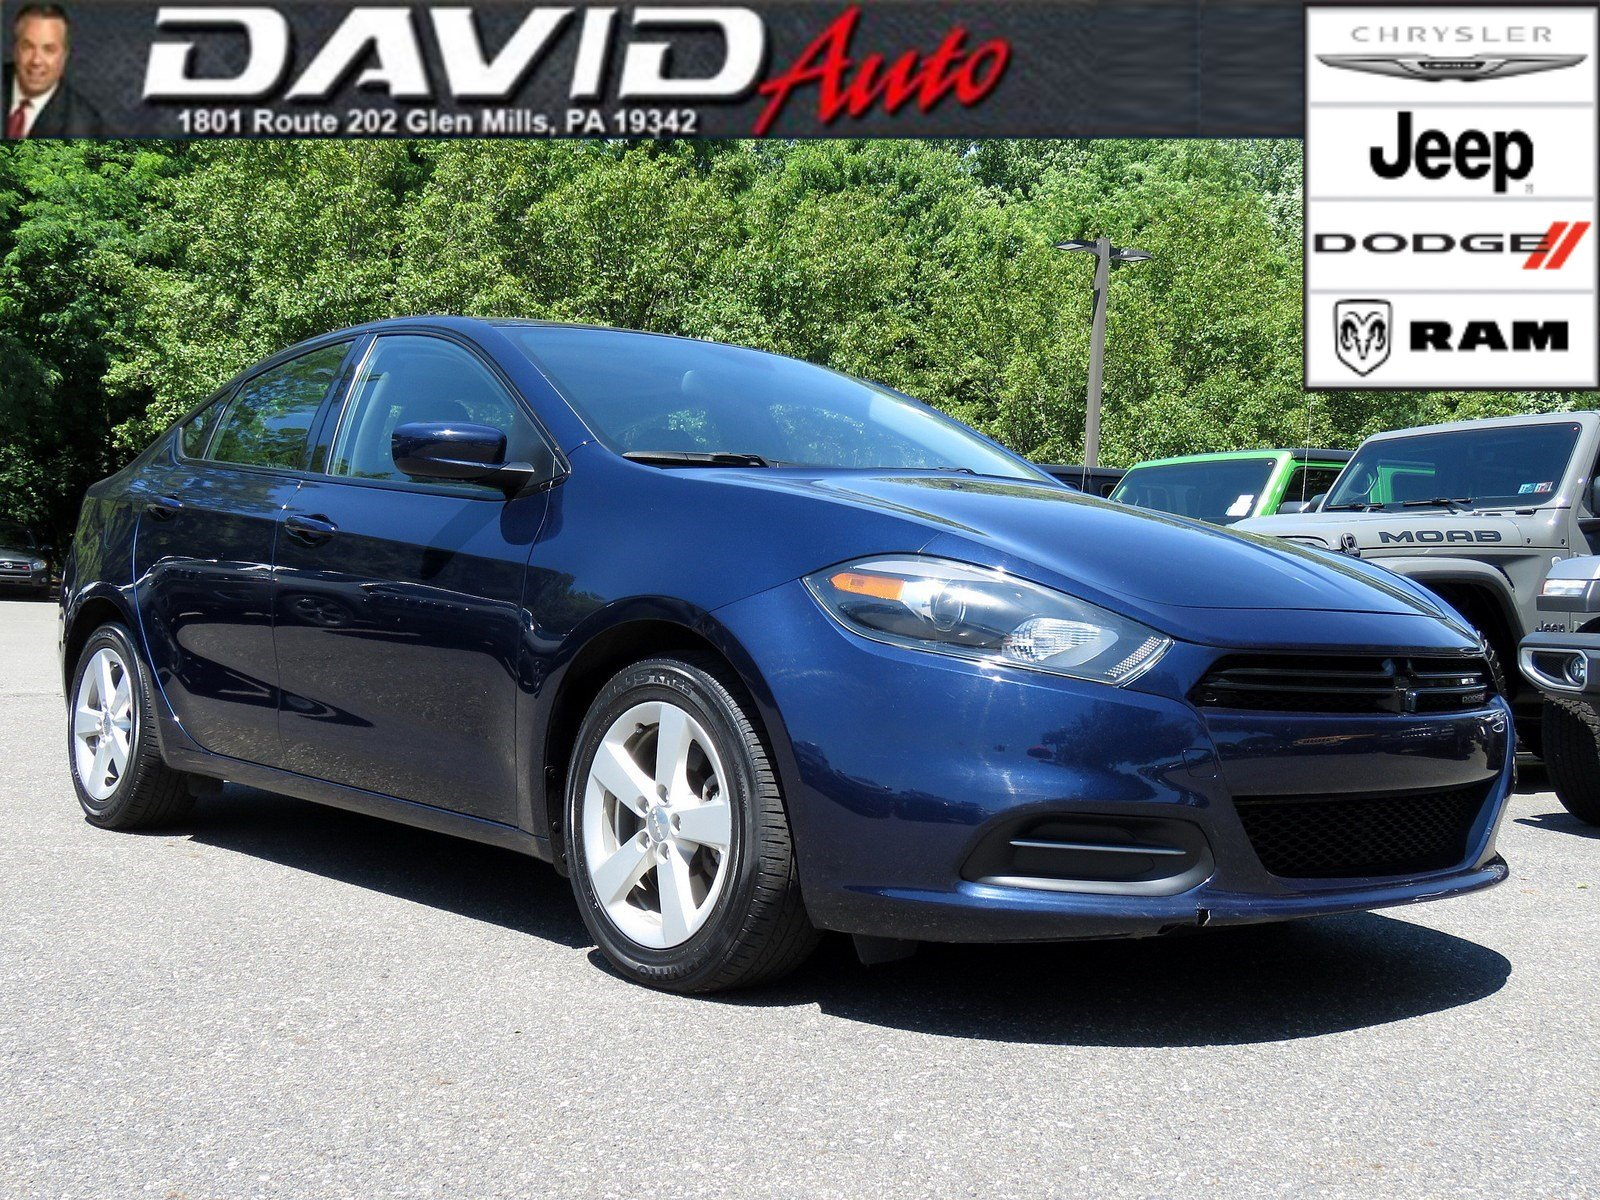 Dodge Dart Sxt >> Pre Owned 2015 Dodge Dart Sxt 4dr Car In Glen Mills M19040a David